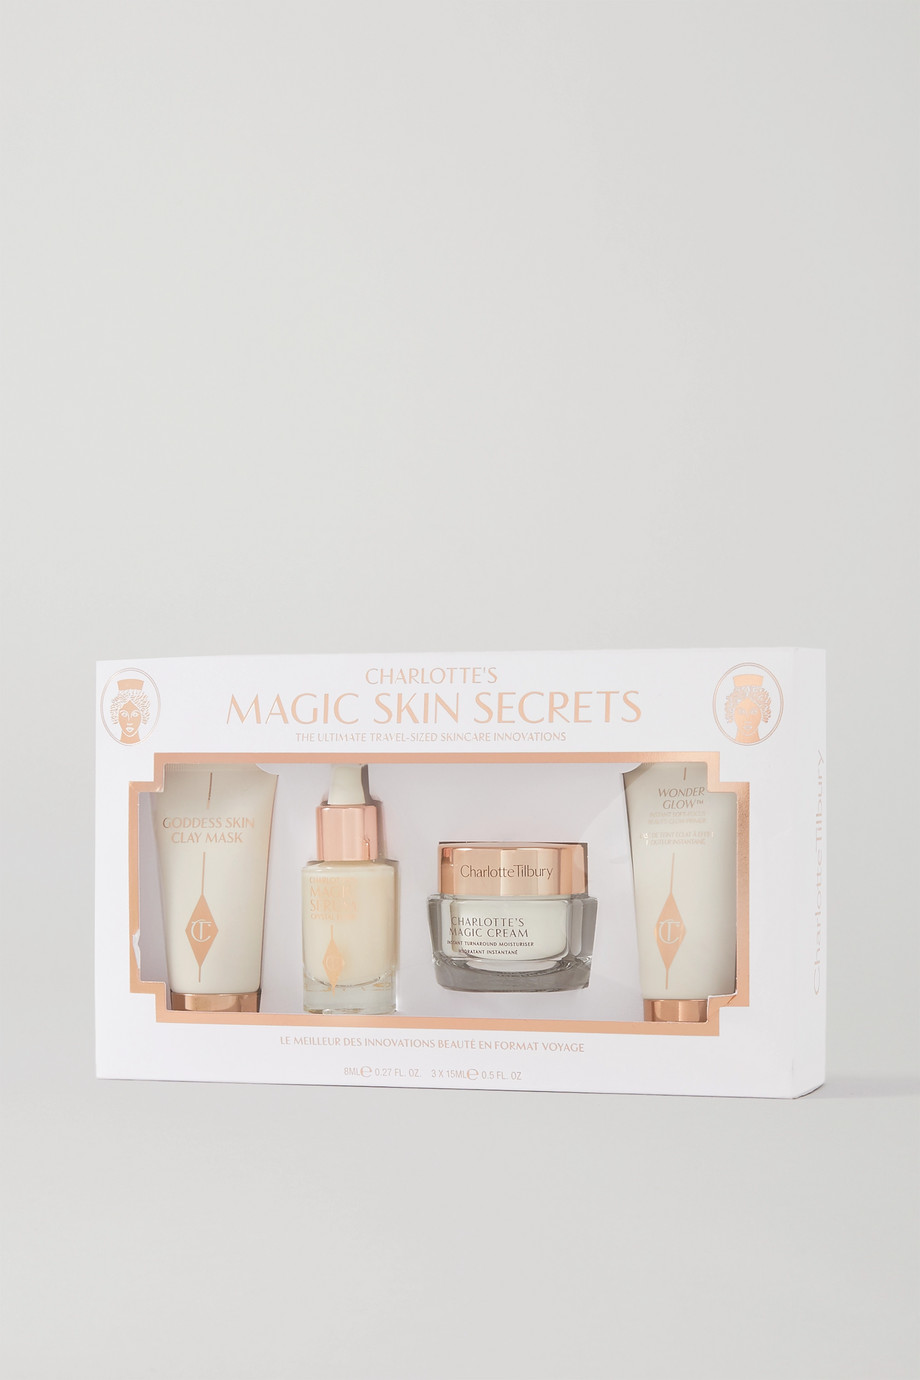 Charlotte Tilbury Charlotte's Magic Skin Secrets Set